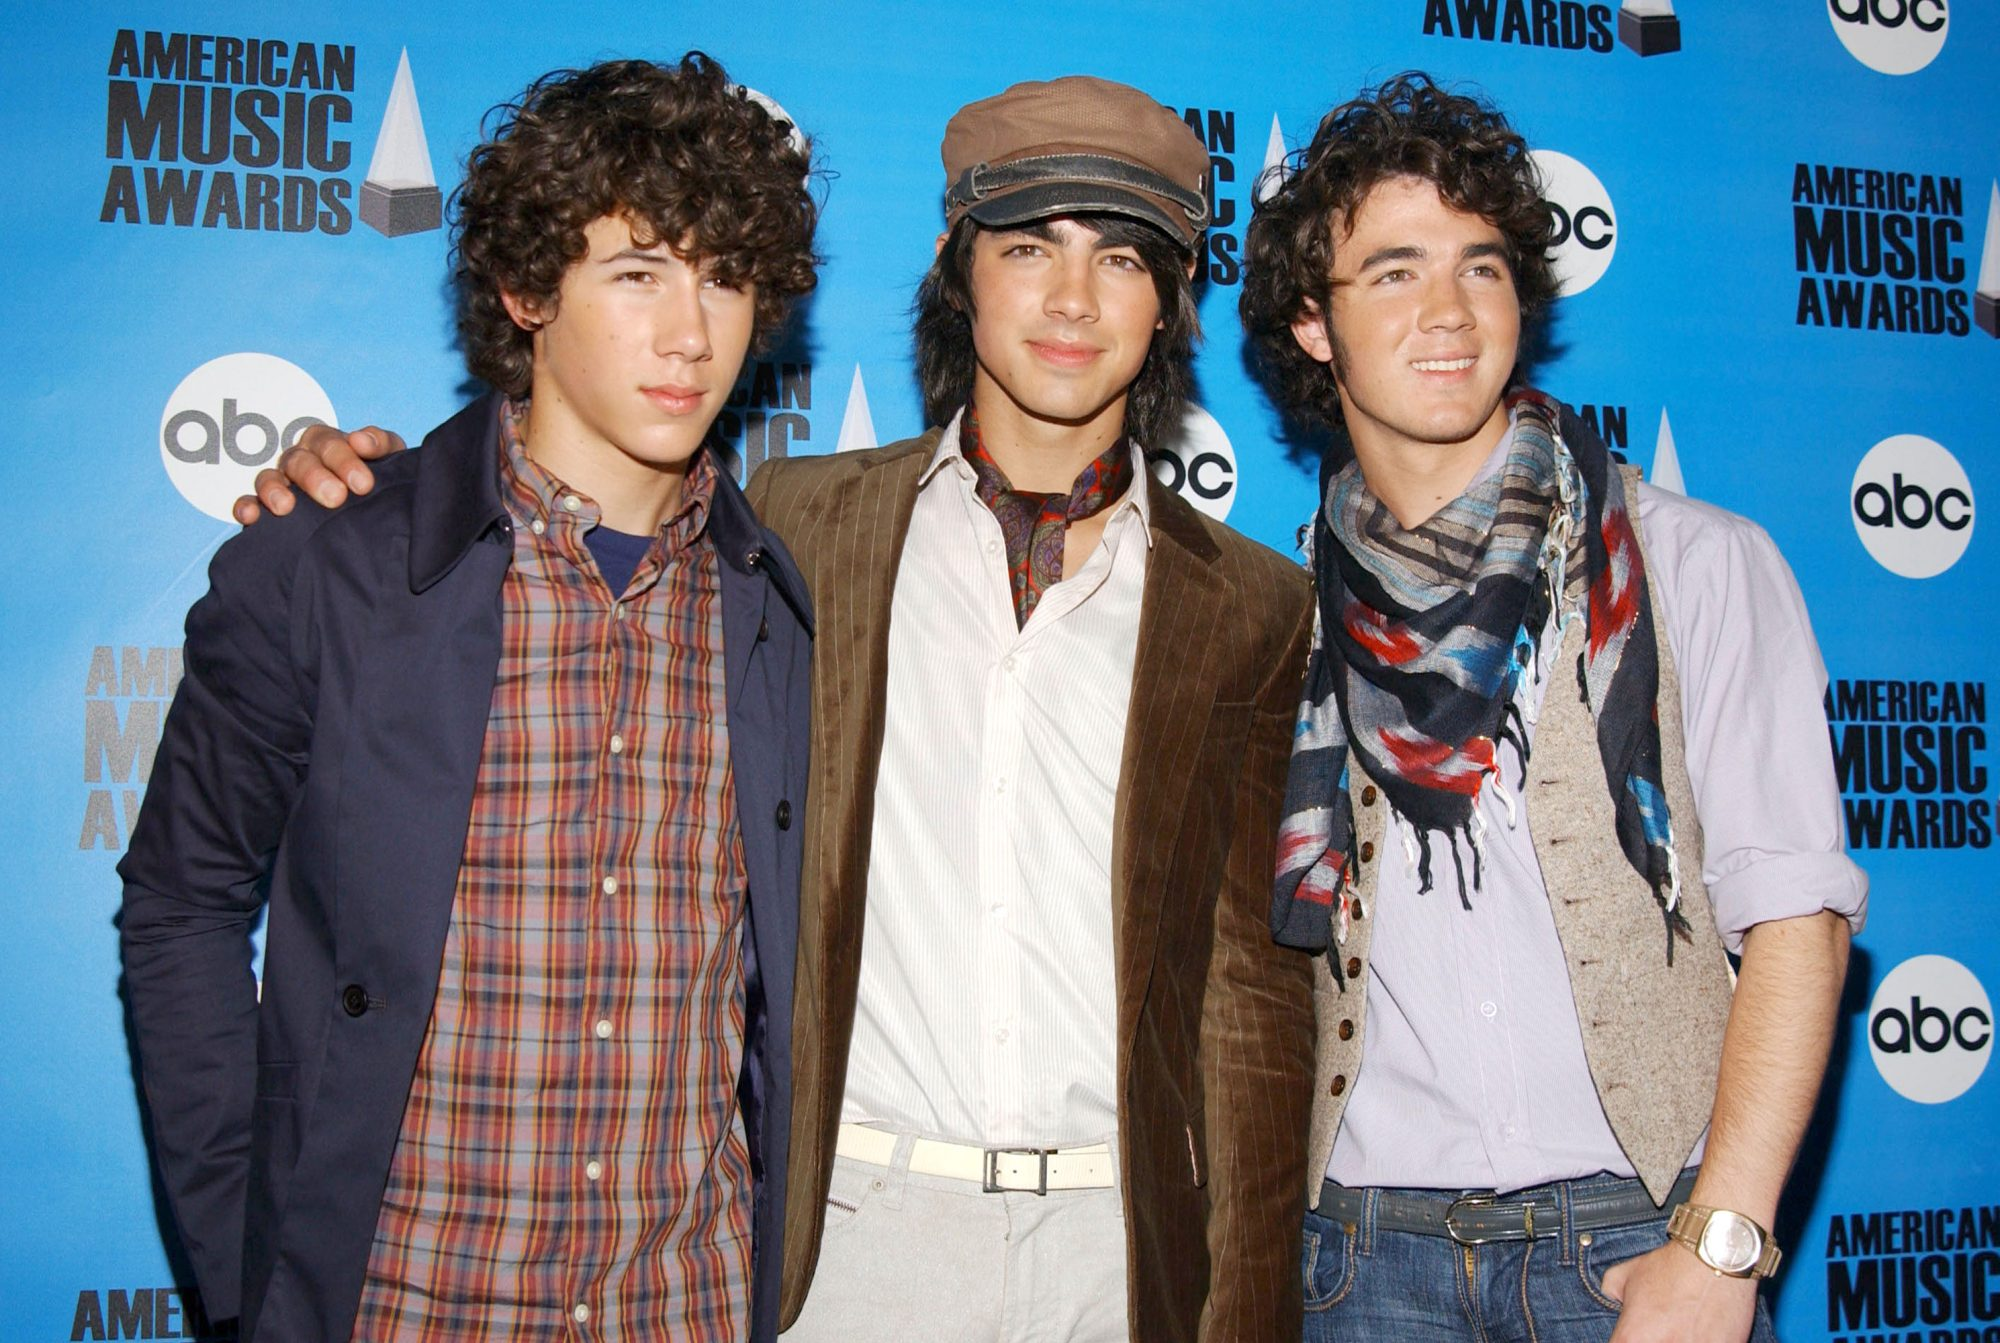 2007 American Music Awards Nominations Press Conference, Beverly Hills, Los Angeles, America - 09 Oct 2007